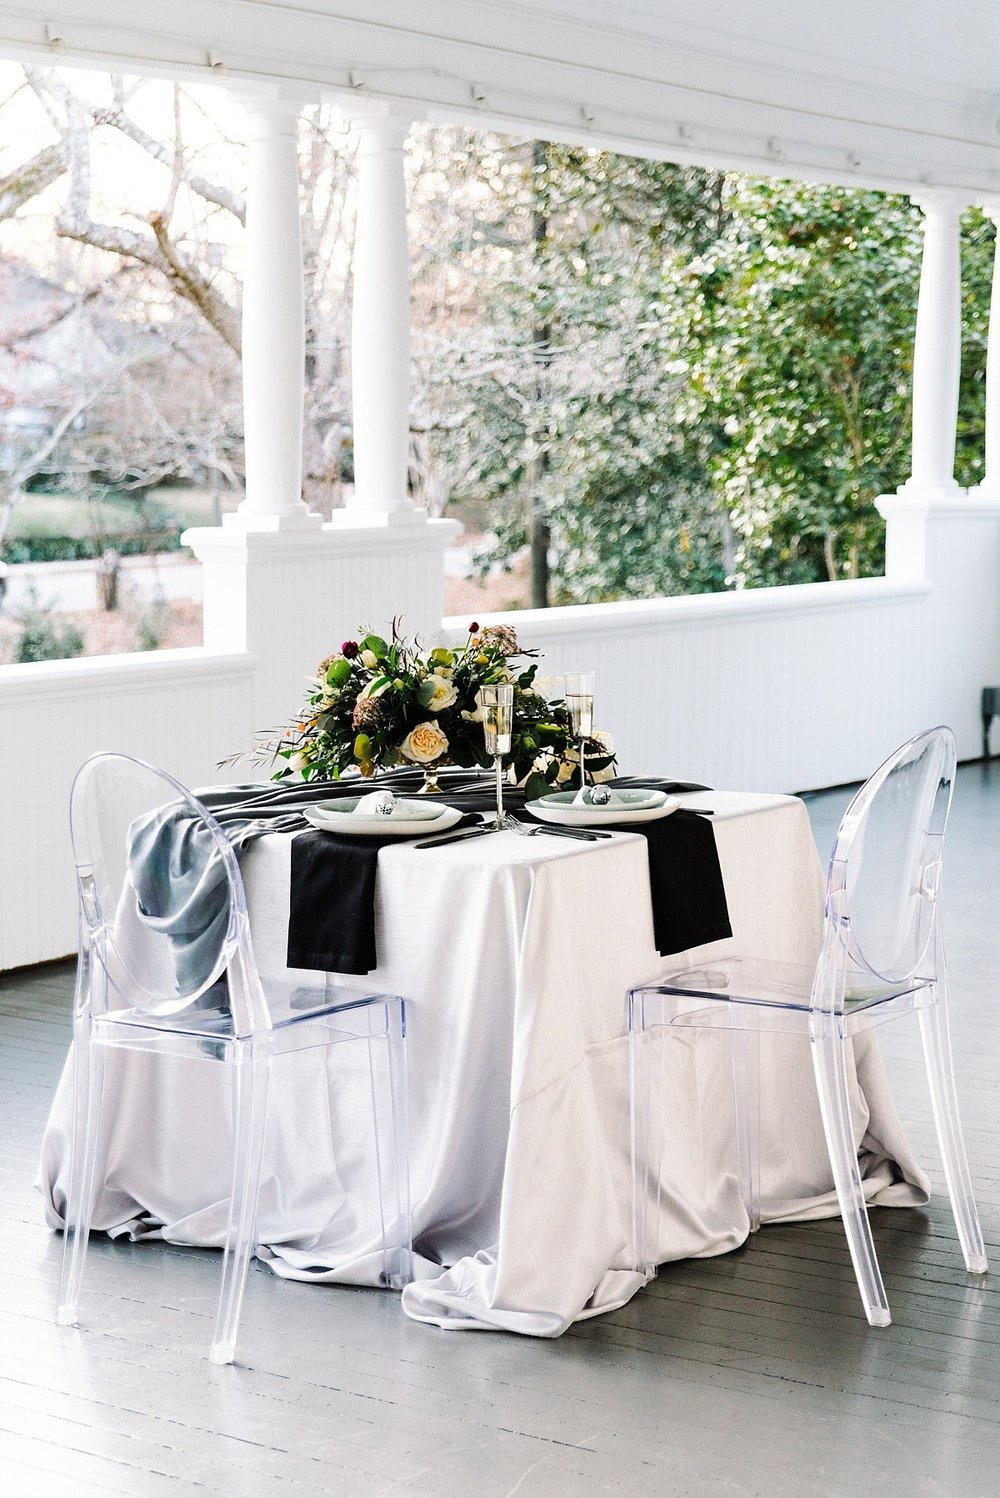 smm_photography_southern_savvy_events_timeless_winter_shoot_51.jpg